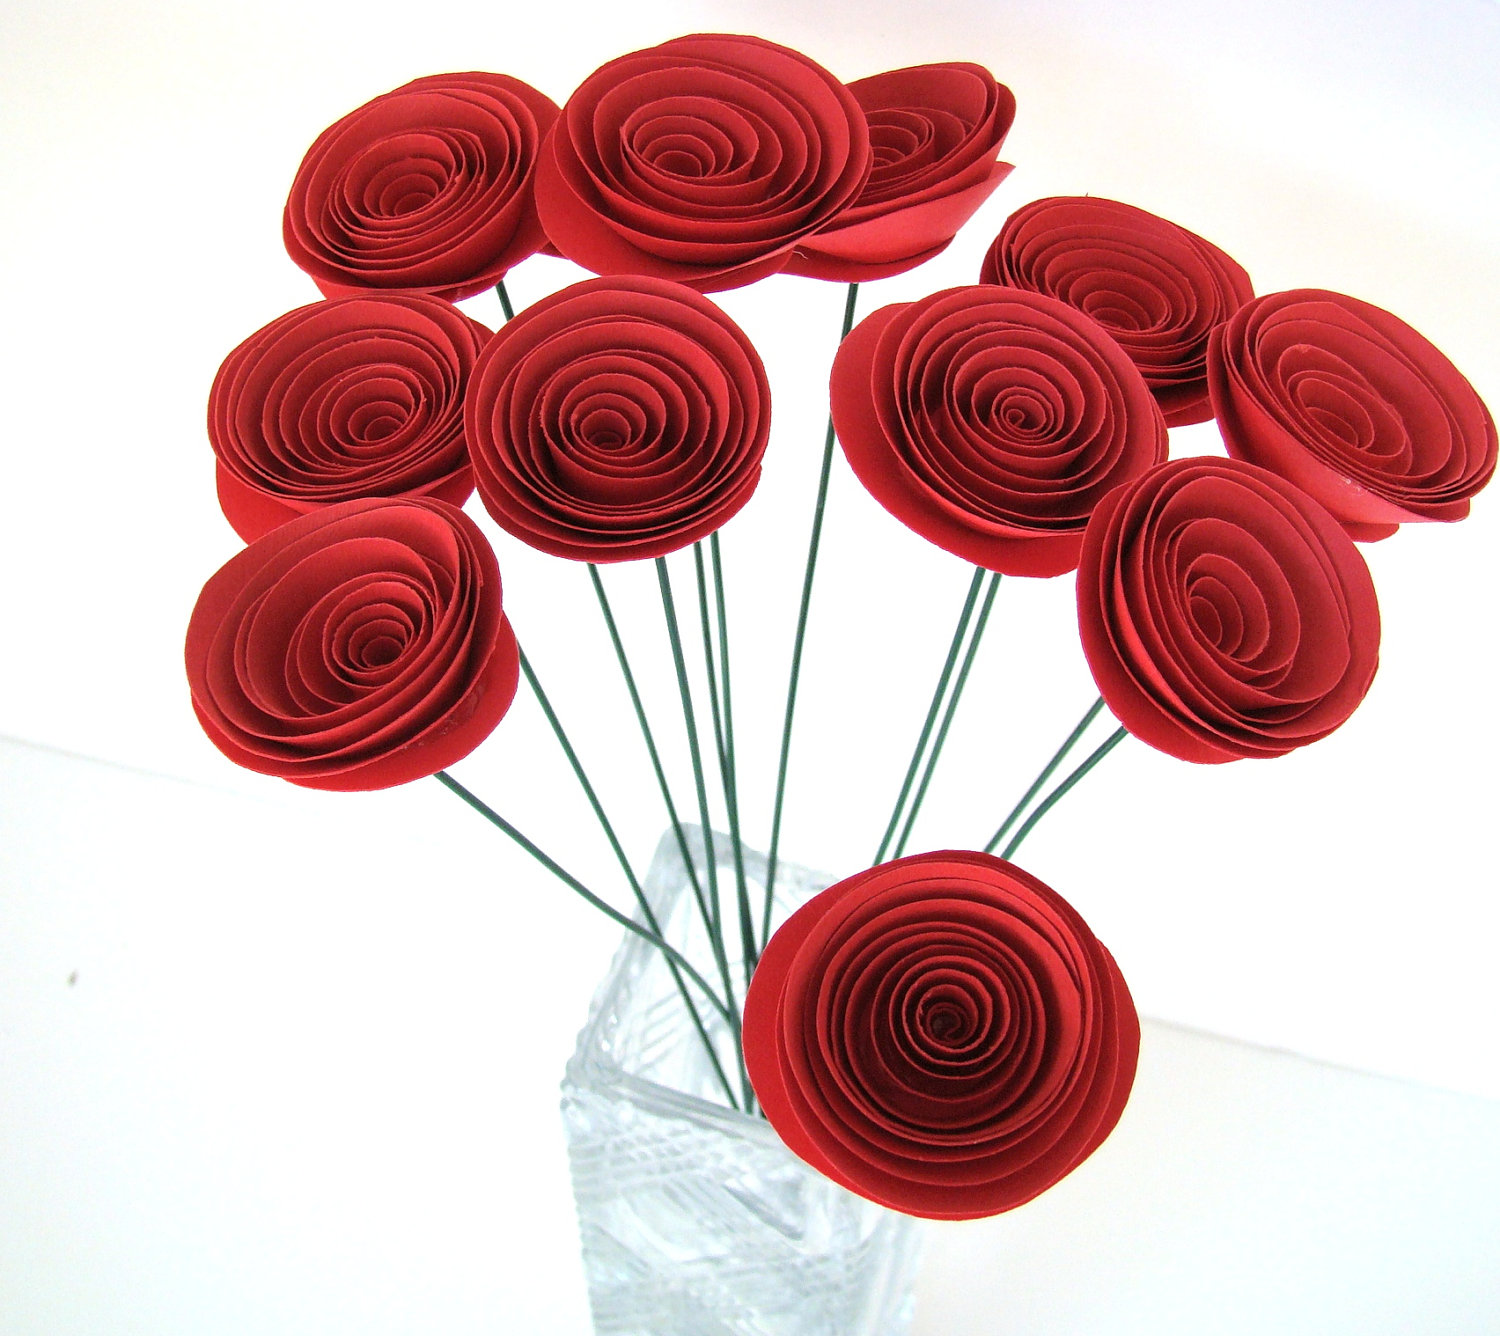 Small Red Roses One Dozen Spiral Paper Roses With Stems Origami